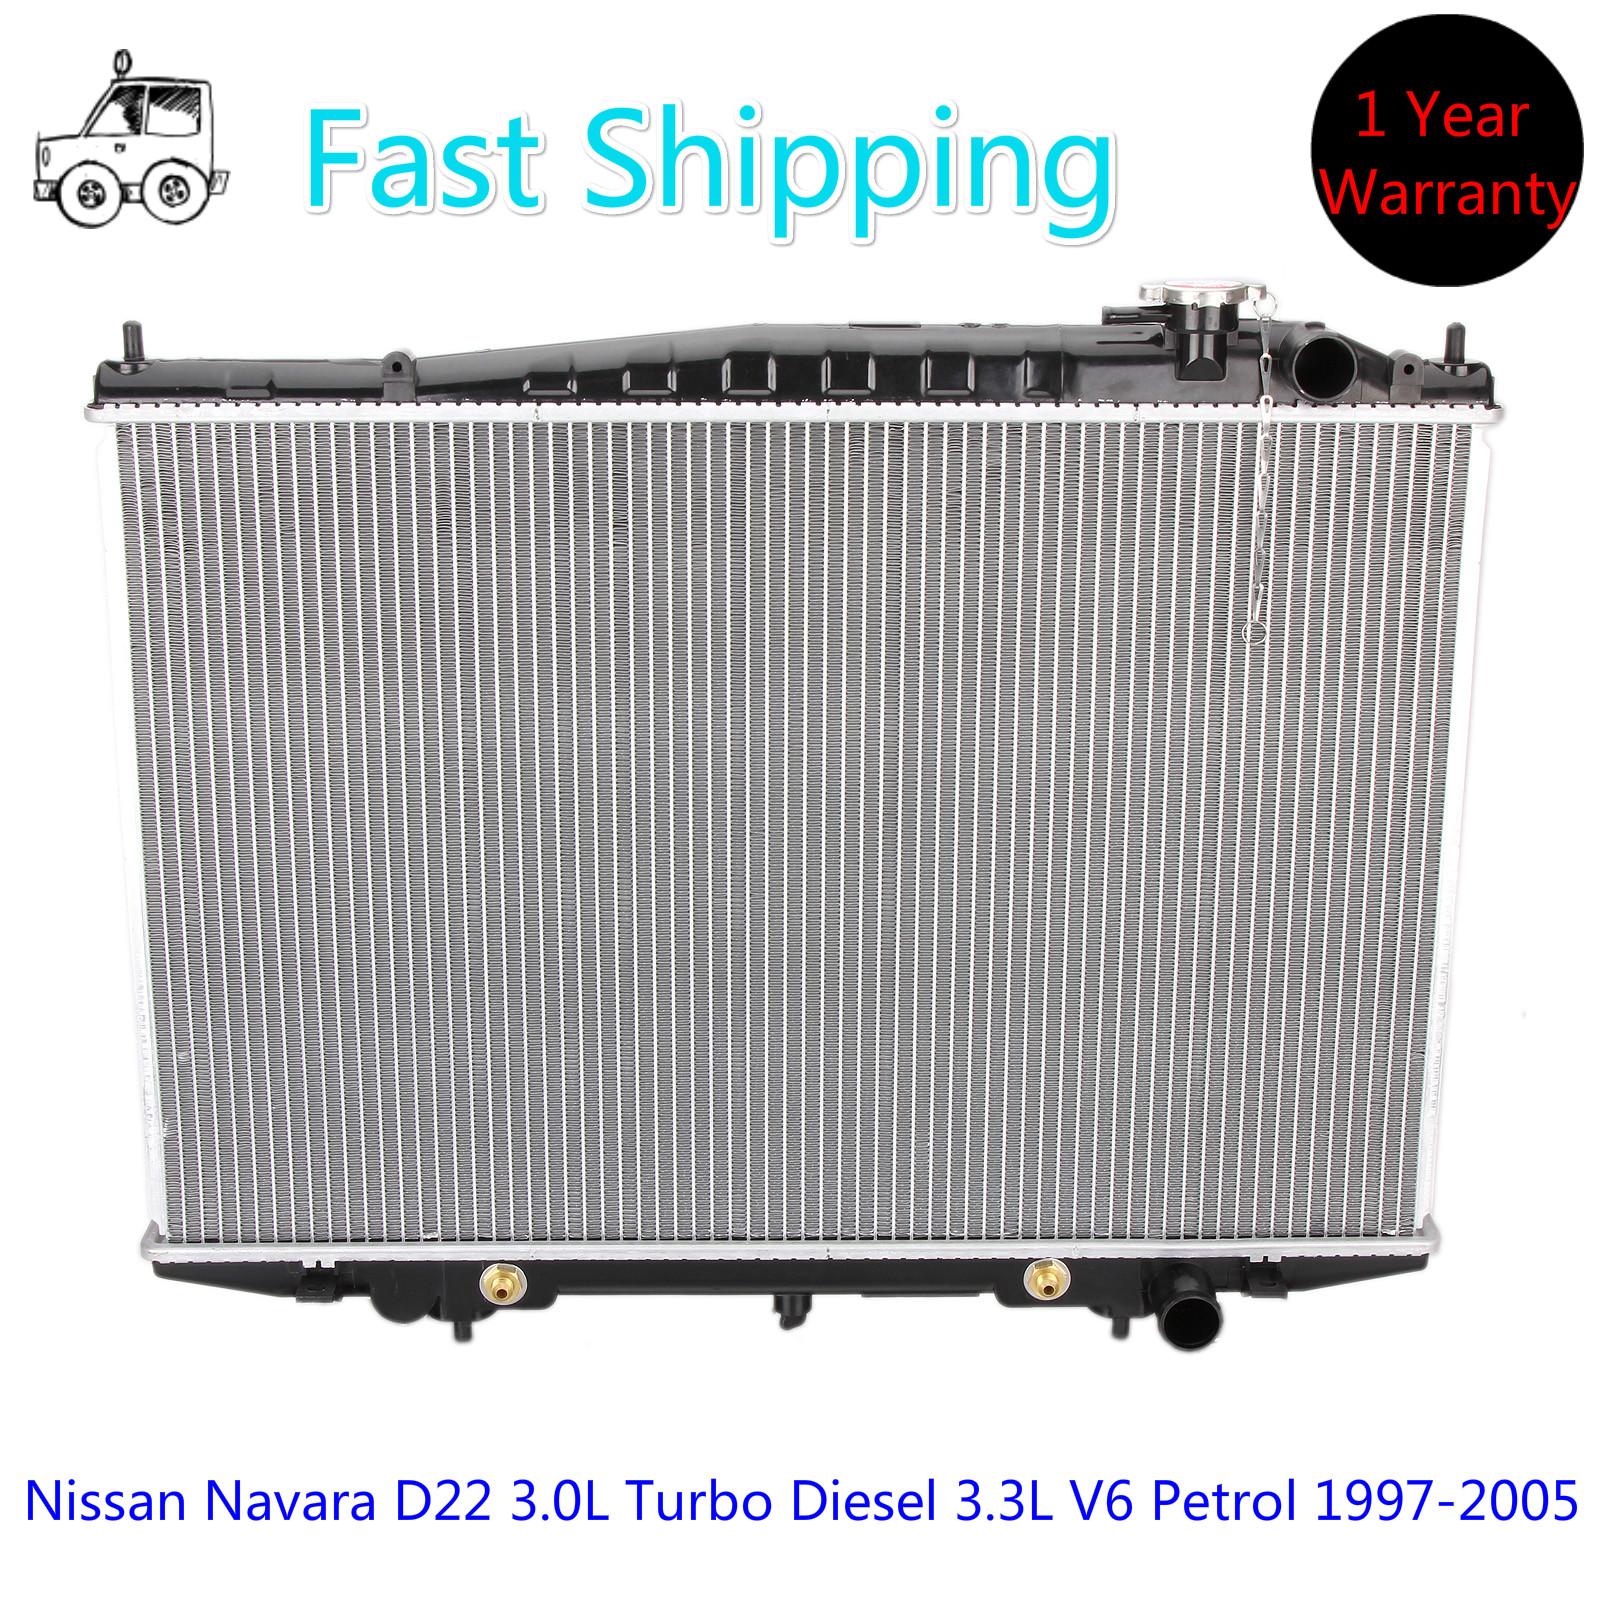 Radiator for Nissan Navara D22 3.0L Turbo Diesel 3.3L V6 Petrol 1997-2005  AT/MT